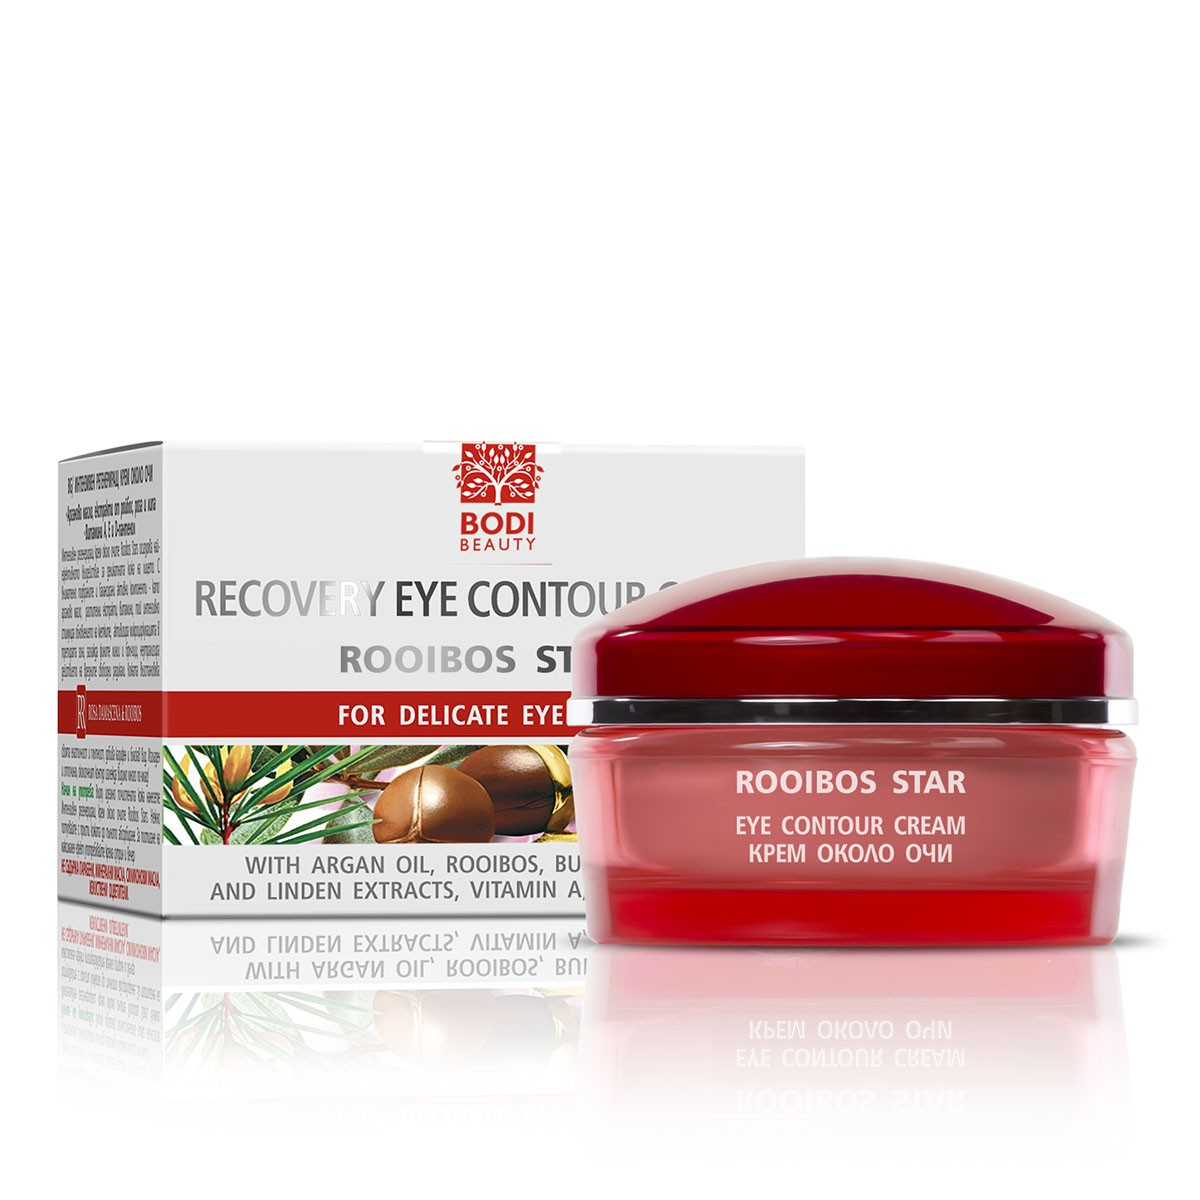 Intense recovery eye contour cream Rooibos Star Bodi Beauty